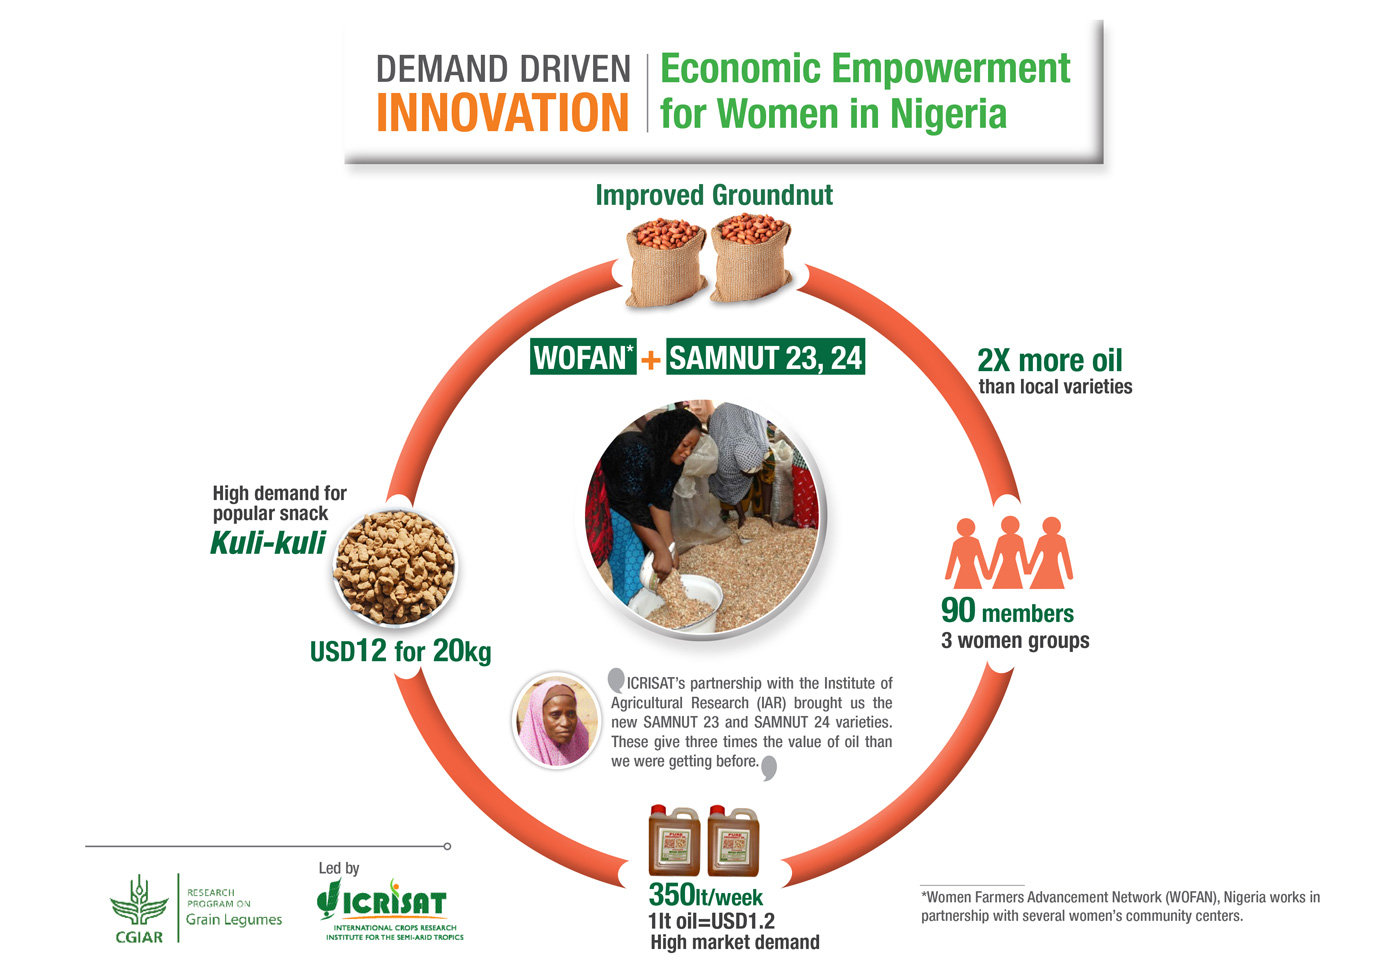 Economic Empowerment for Women in Nigeria